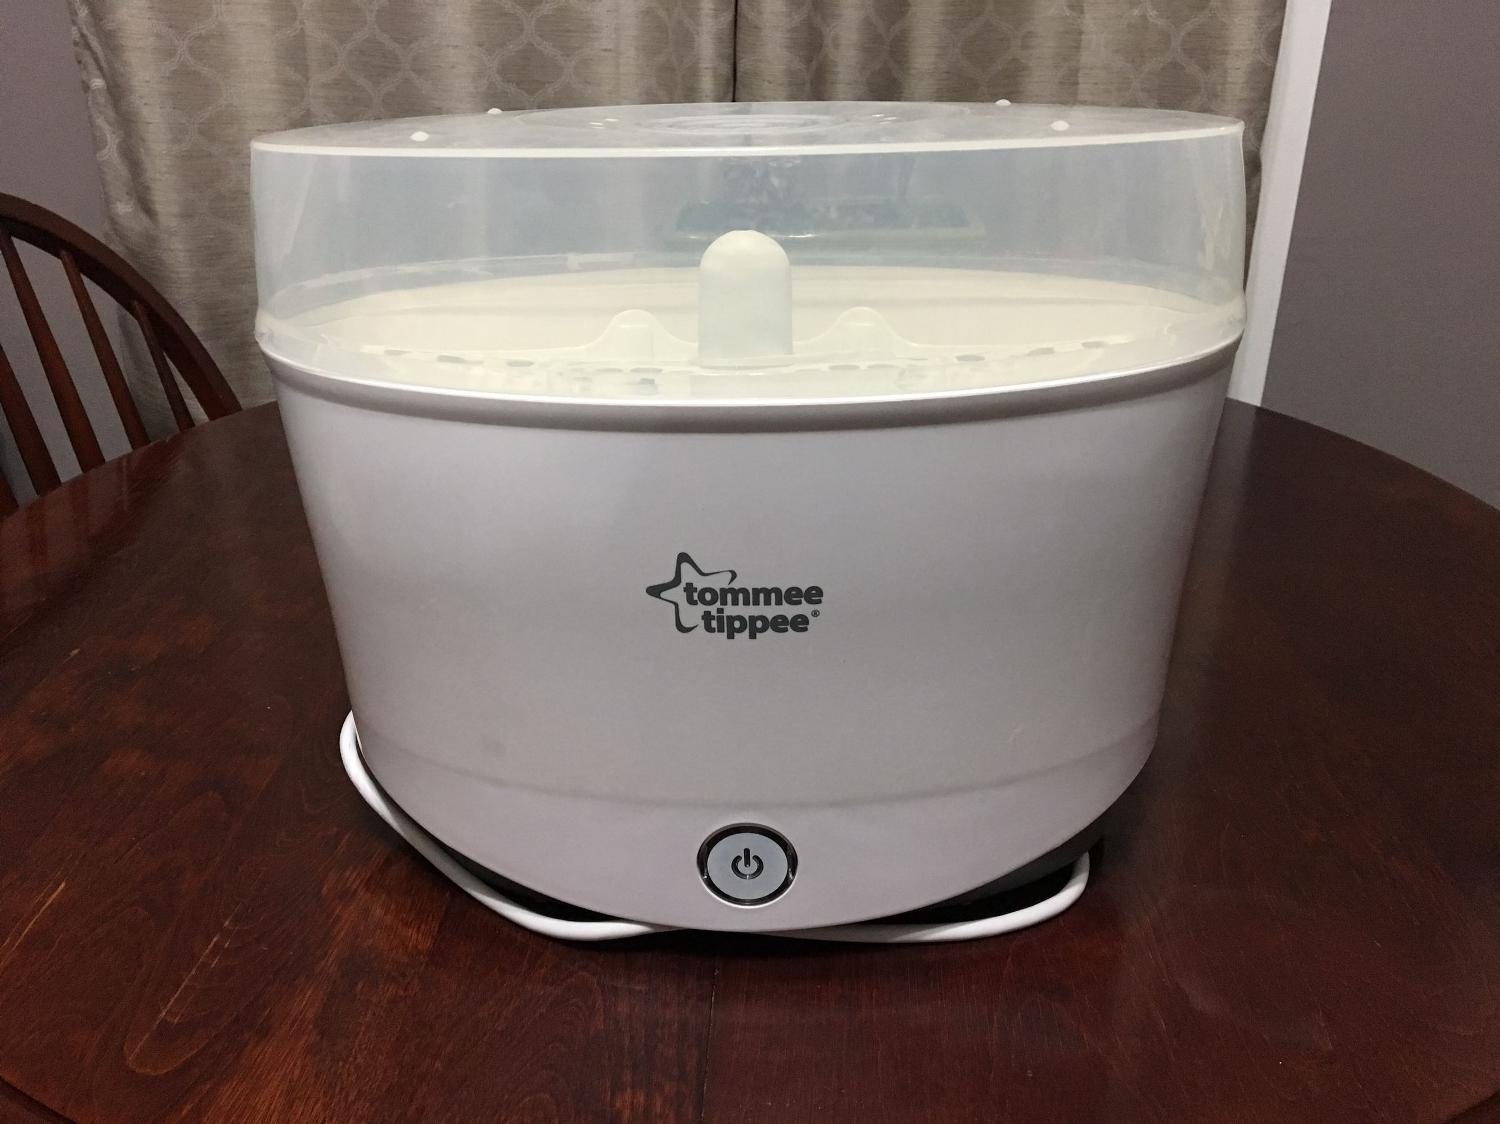 tommee tippee electric sterilizer instructions